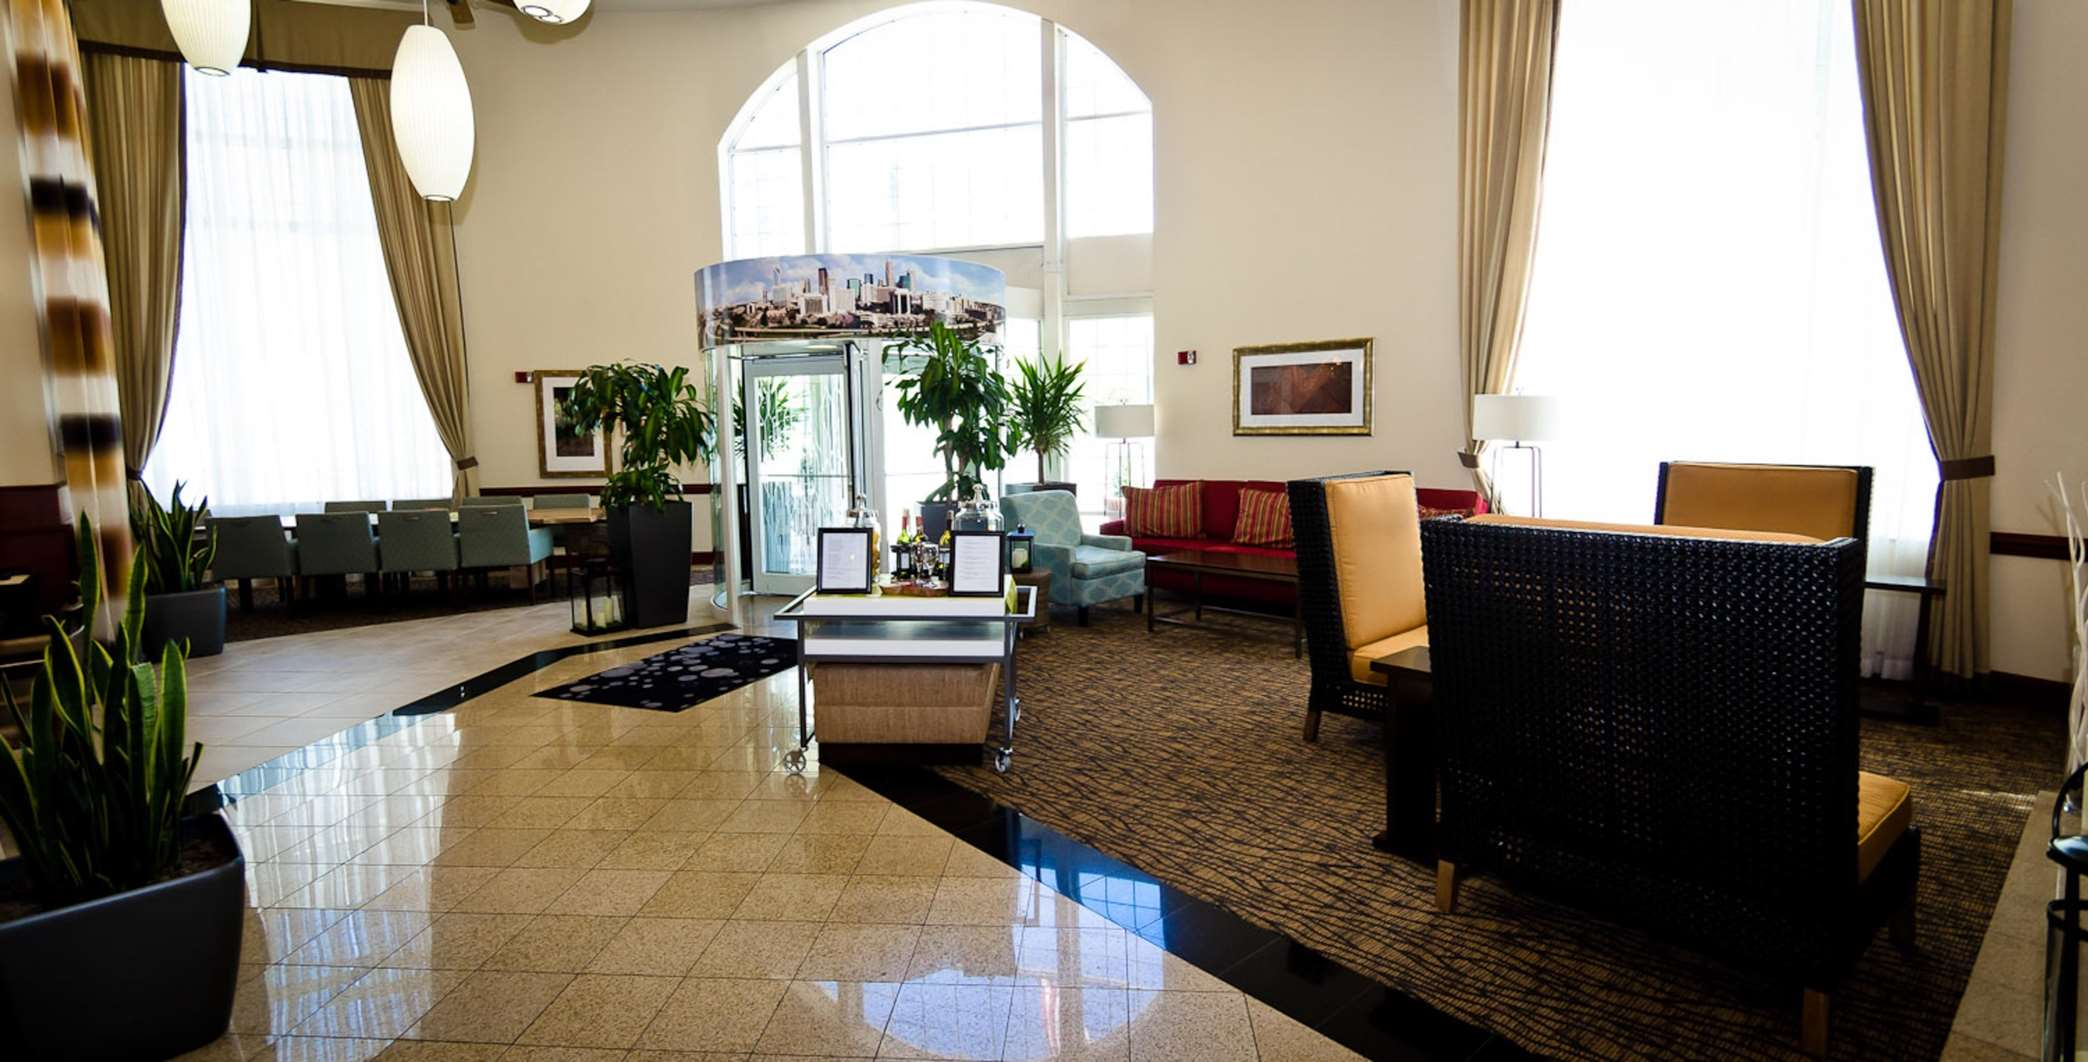 Hilton Garden Inn Charlotte Uptown At 508 E Martin Luther King Jr Blvd Charlotte Nc On Fave